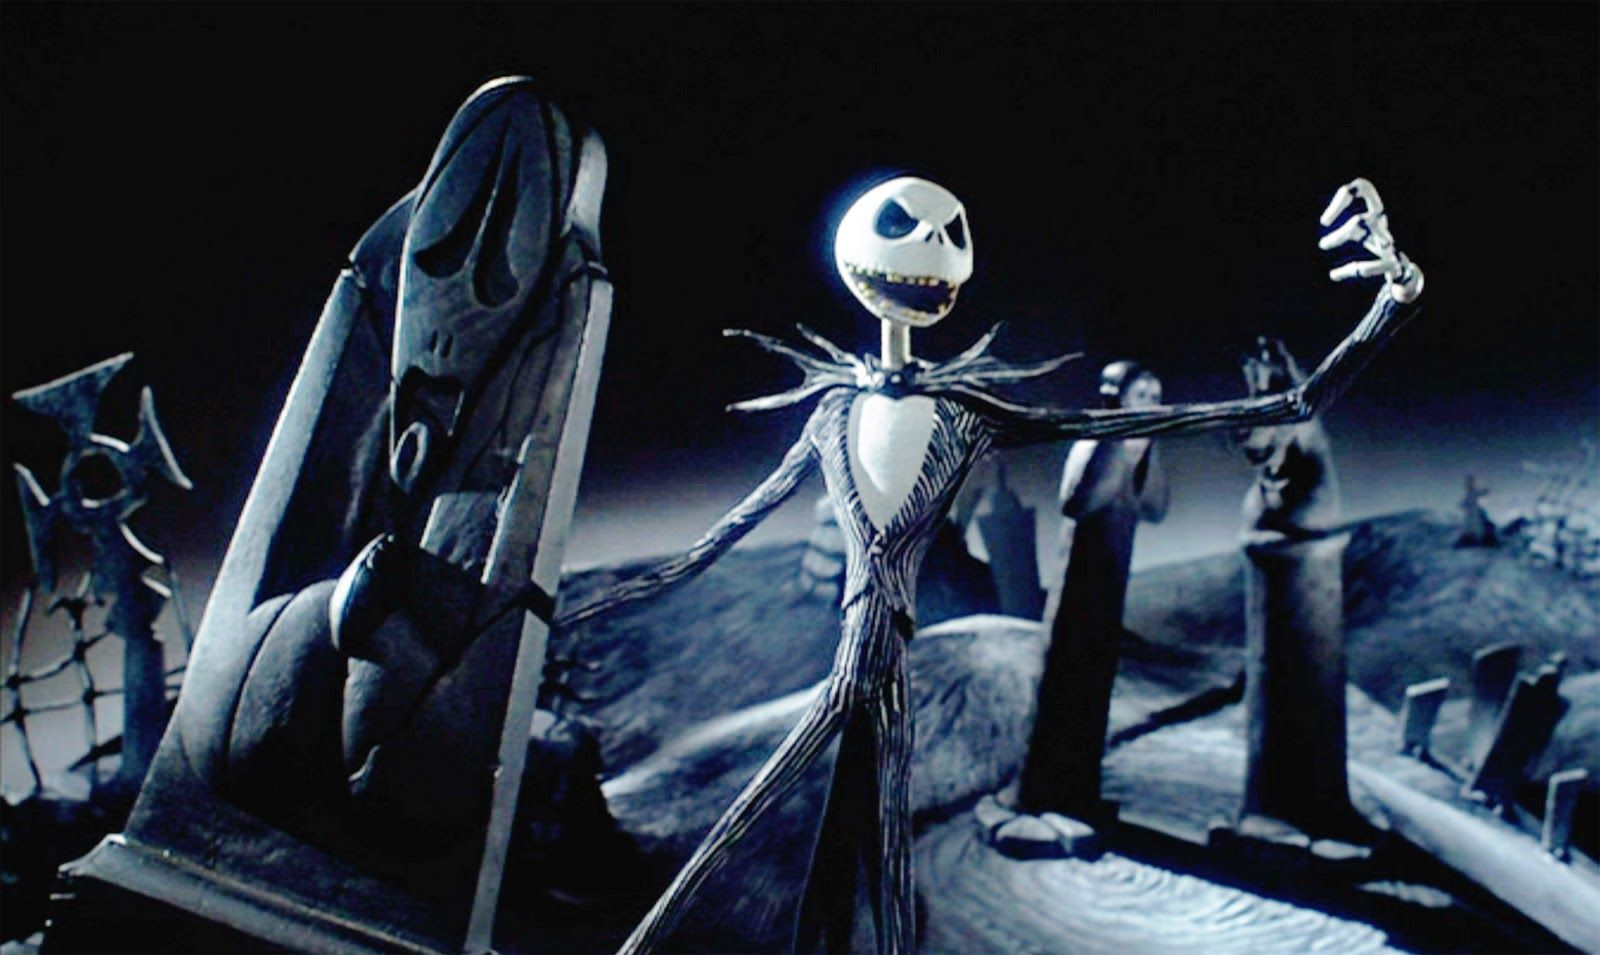 Pin by Joy Drayer on Jack Skellington - The Nightmare ...